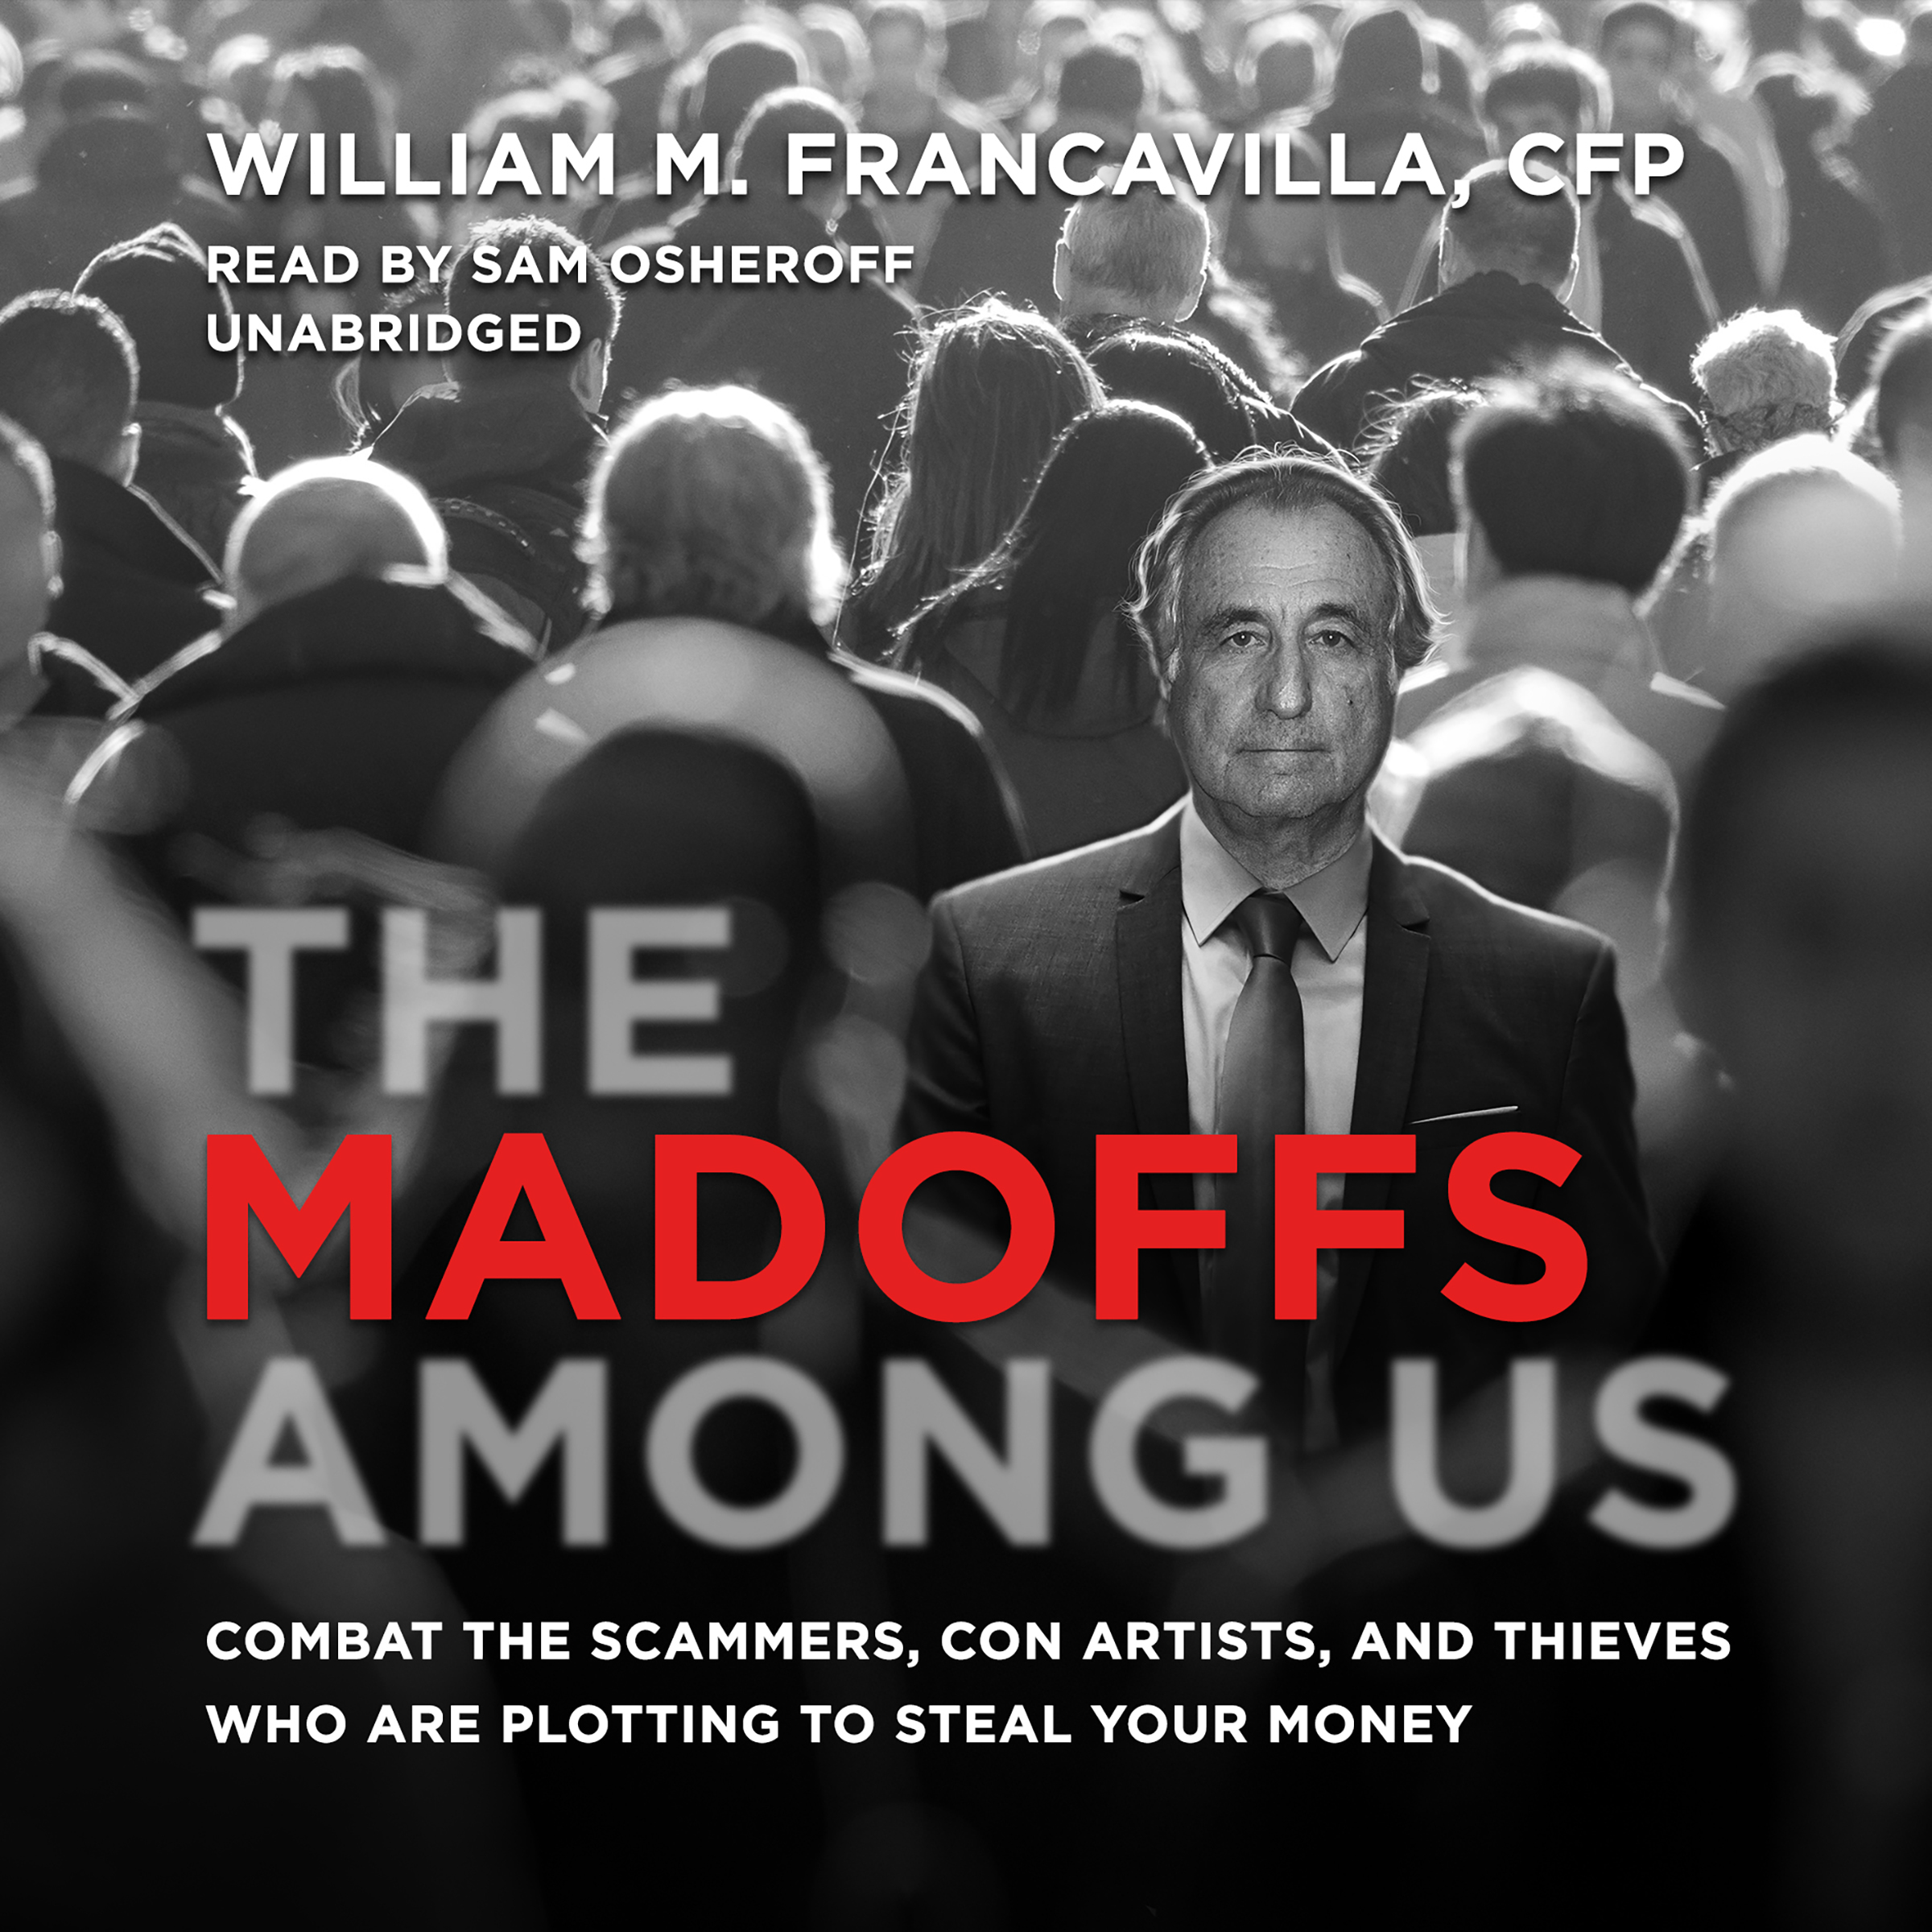 Printable The Madoffs among Us: Combat the Scammers, Con Artists, and Thieves Who Are Plotting to Steal Your Money Audiobook Cover Art